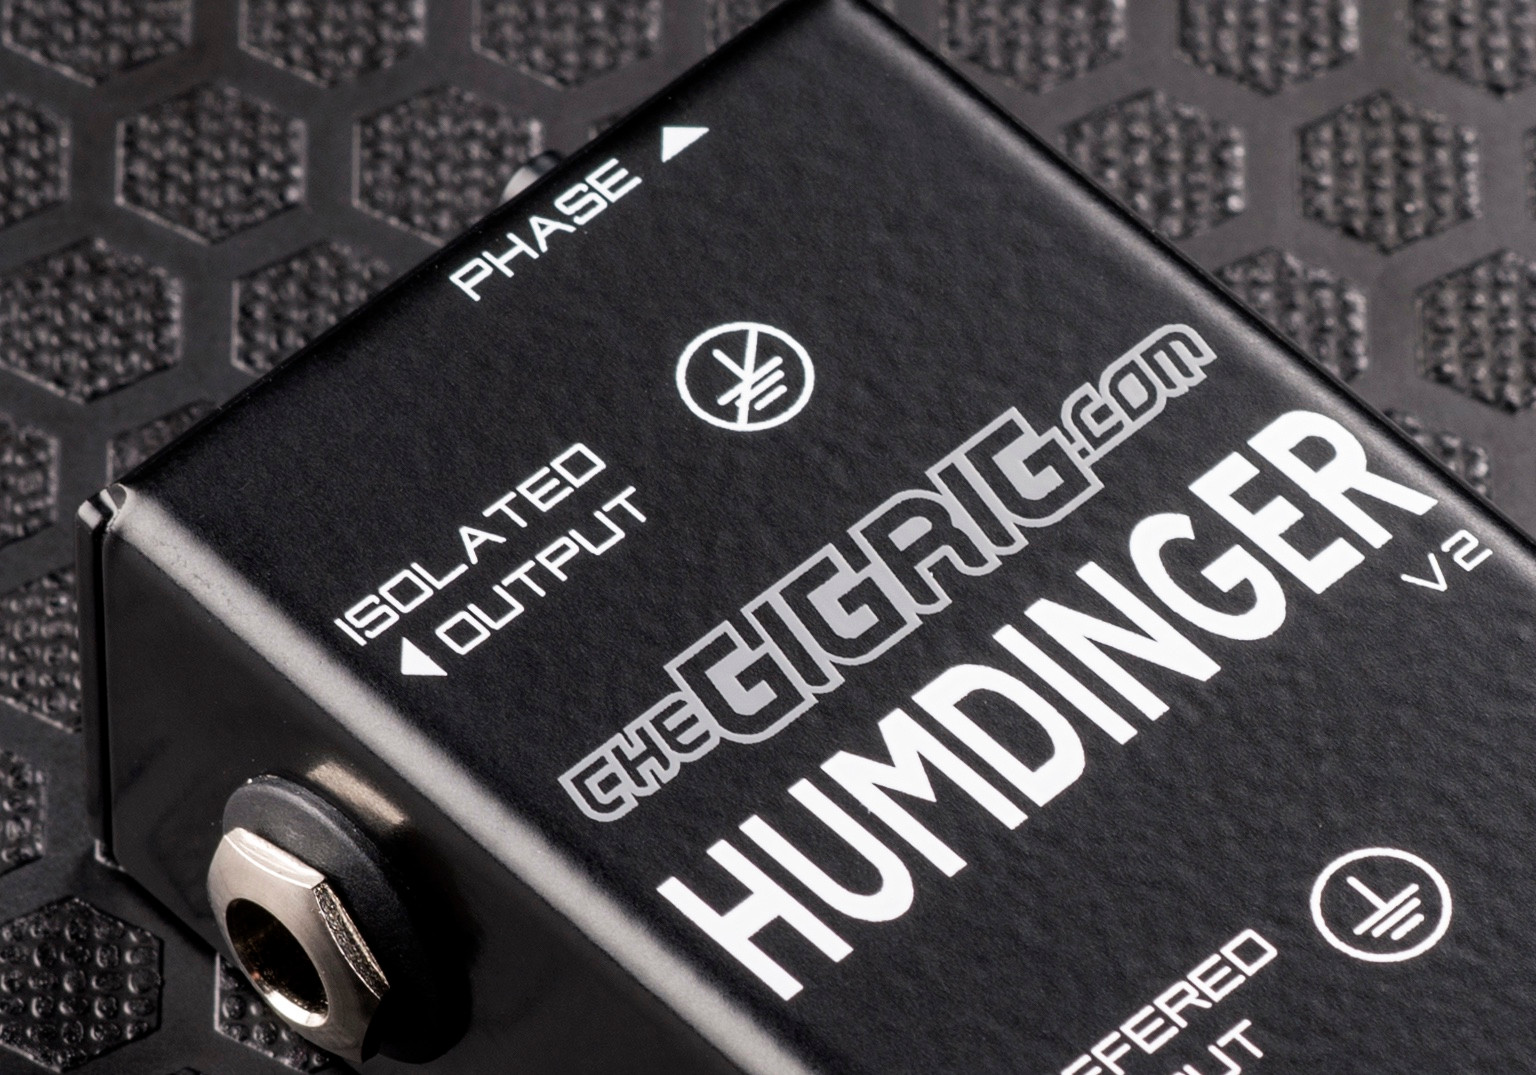 The Gigrig Humdinger Elimination Of Common Signal From Stereo Audio Split Your With No Hum Or Phase Issues